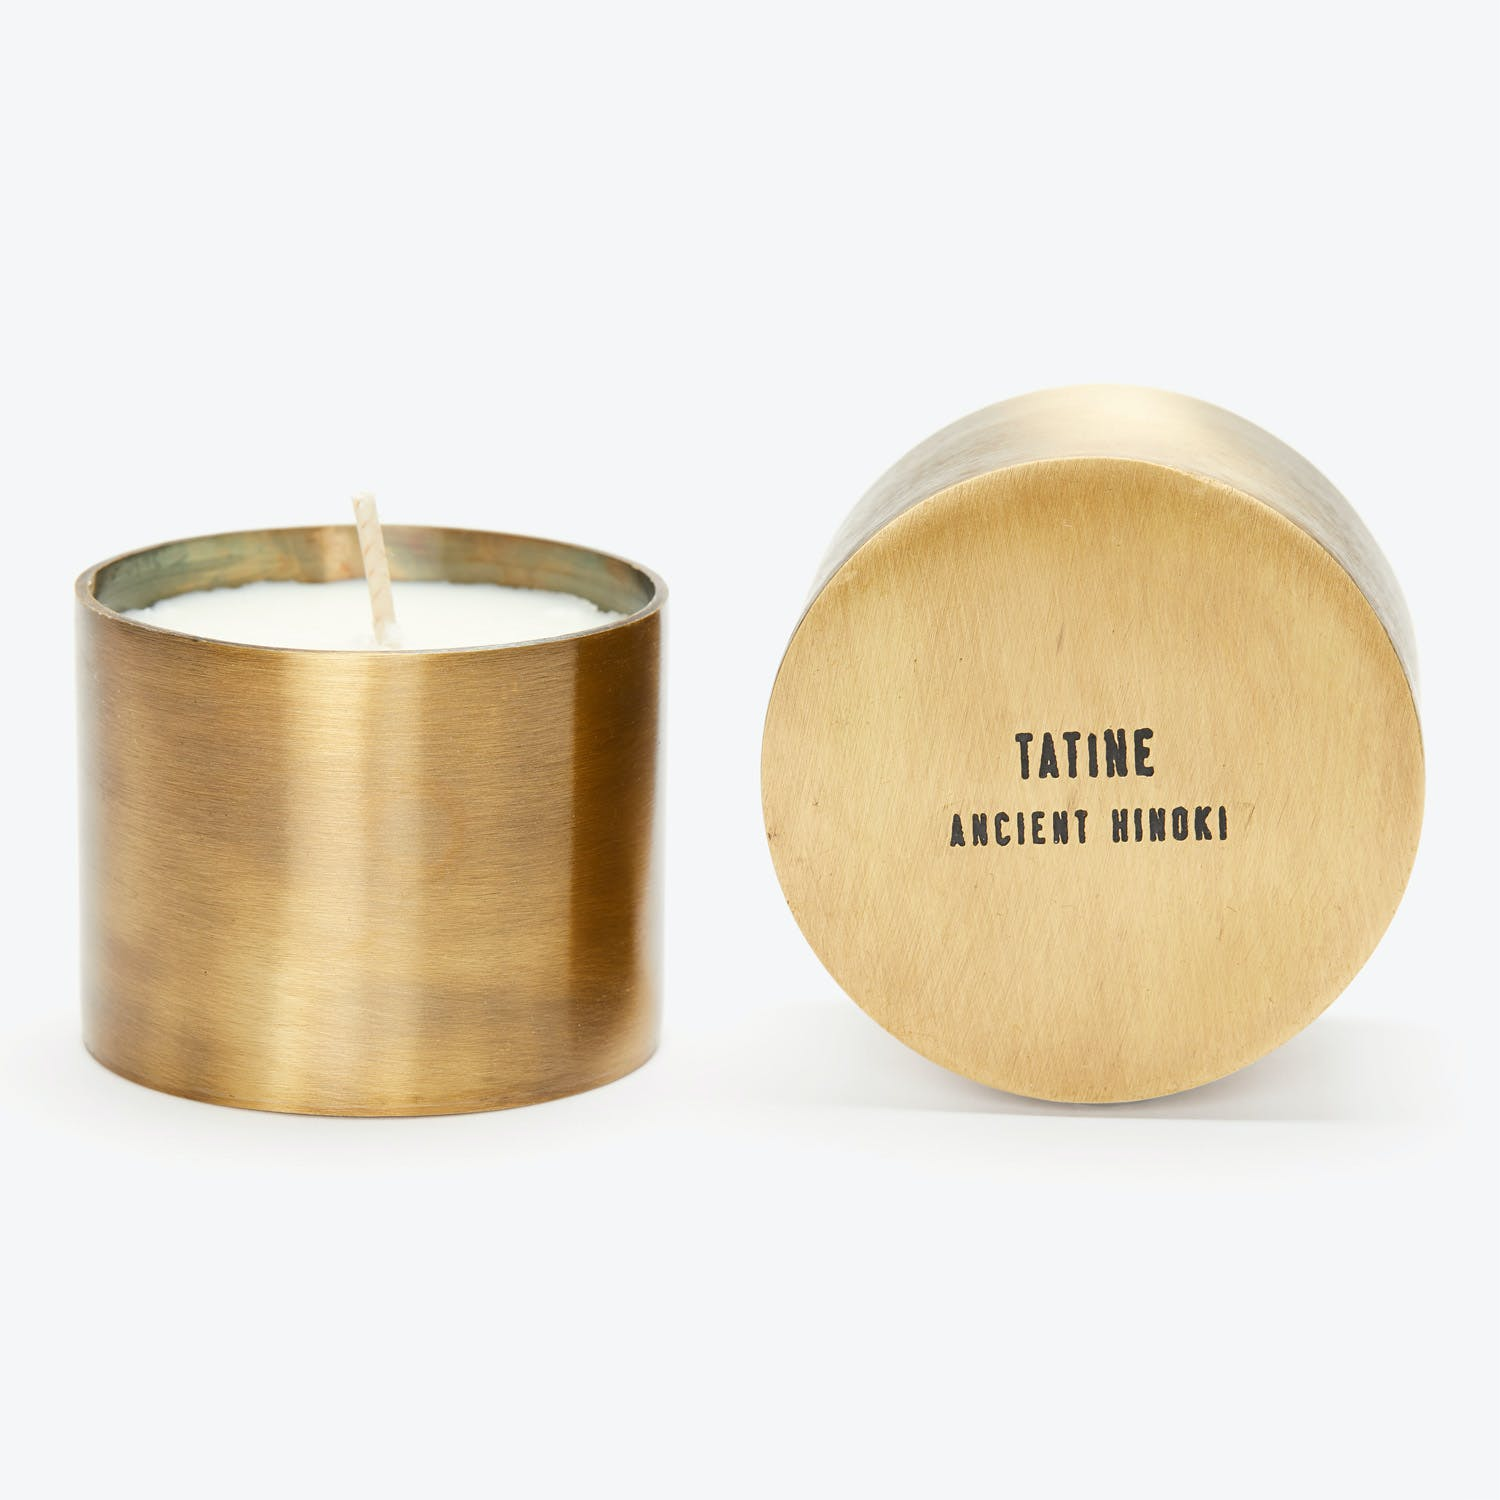 Tatine Natural Brass Collection Ancient Hinoki Candle